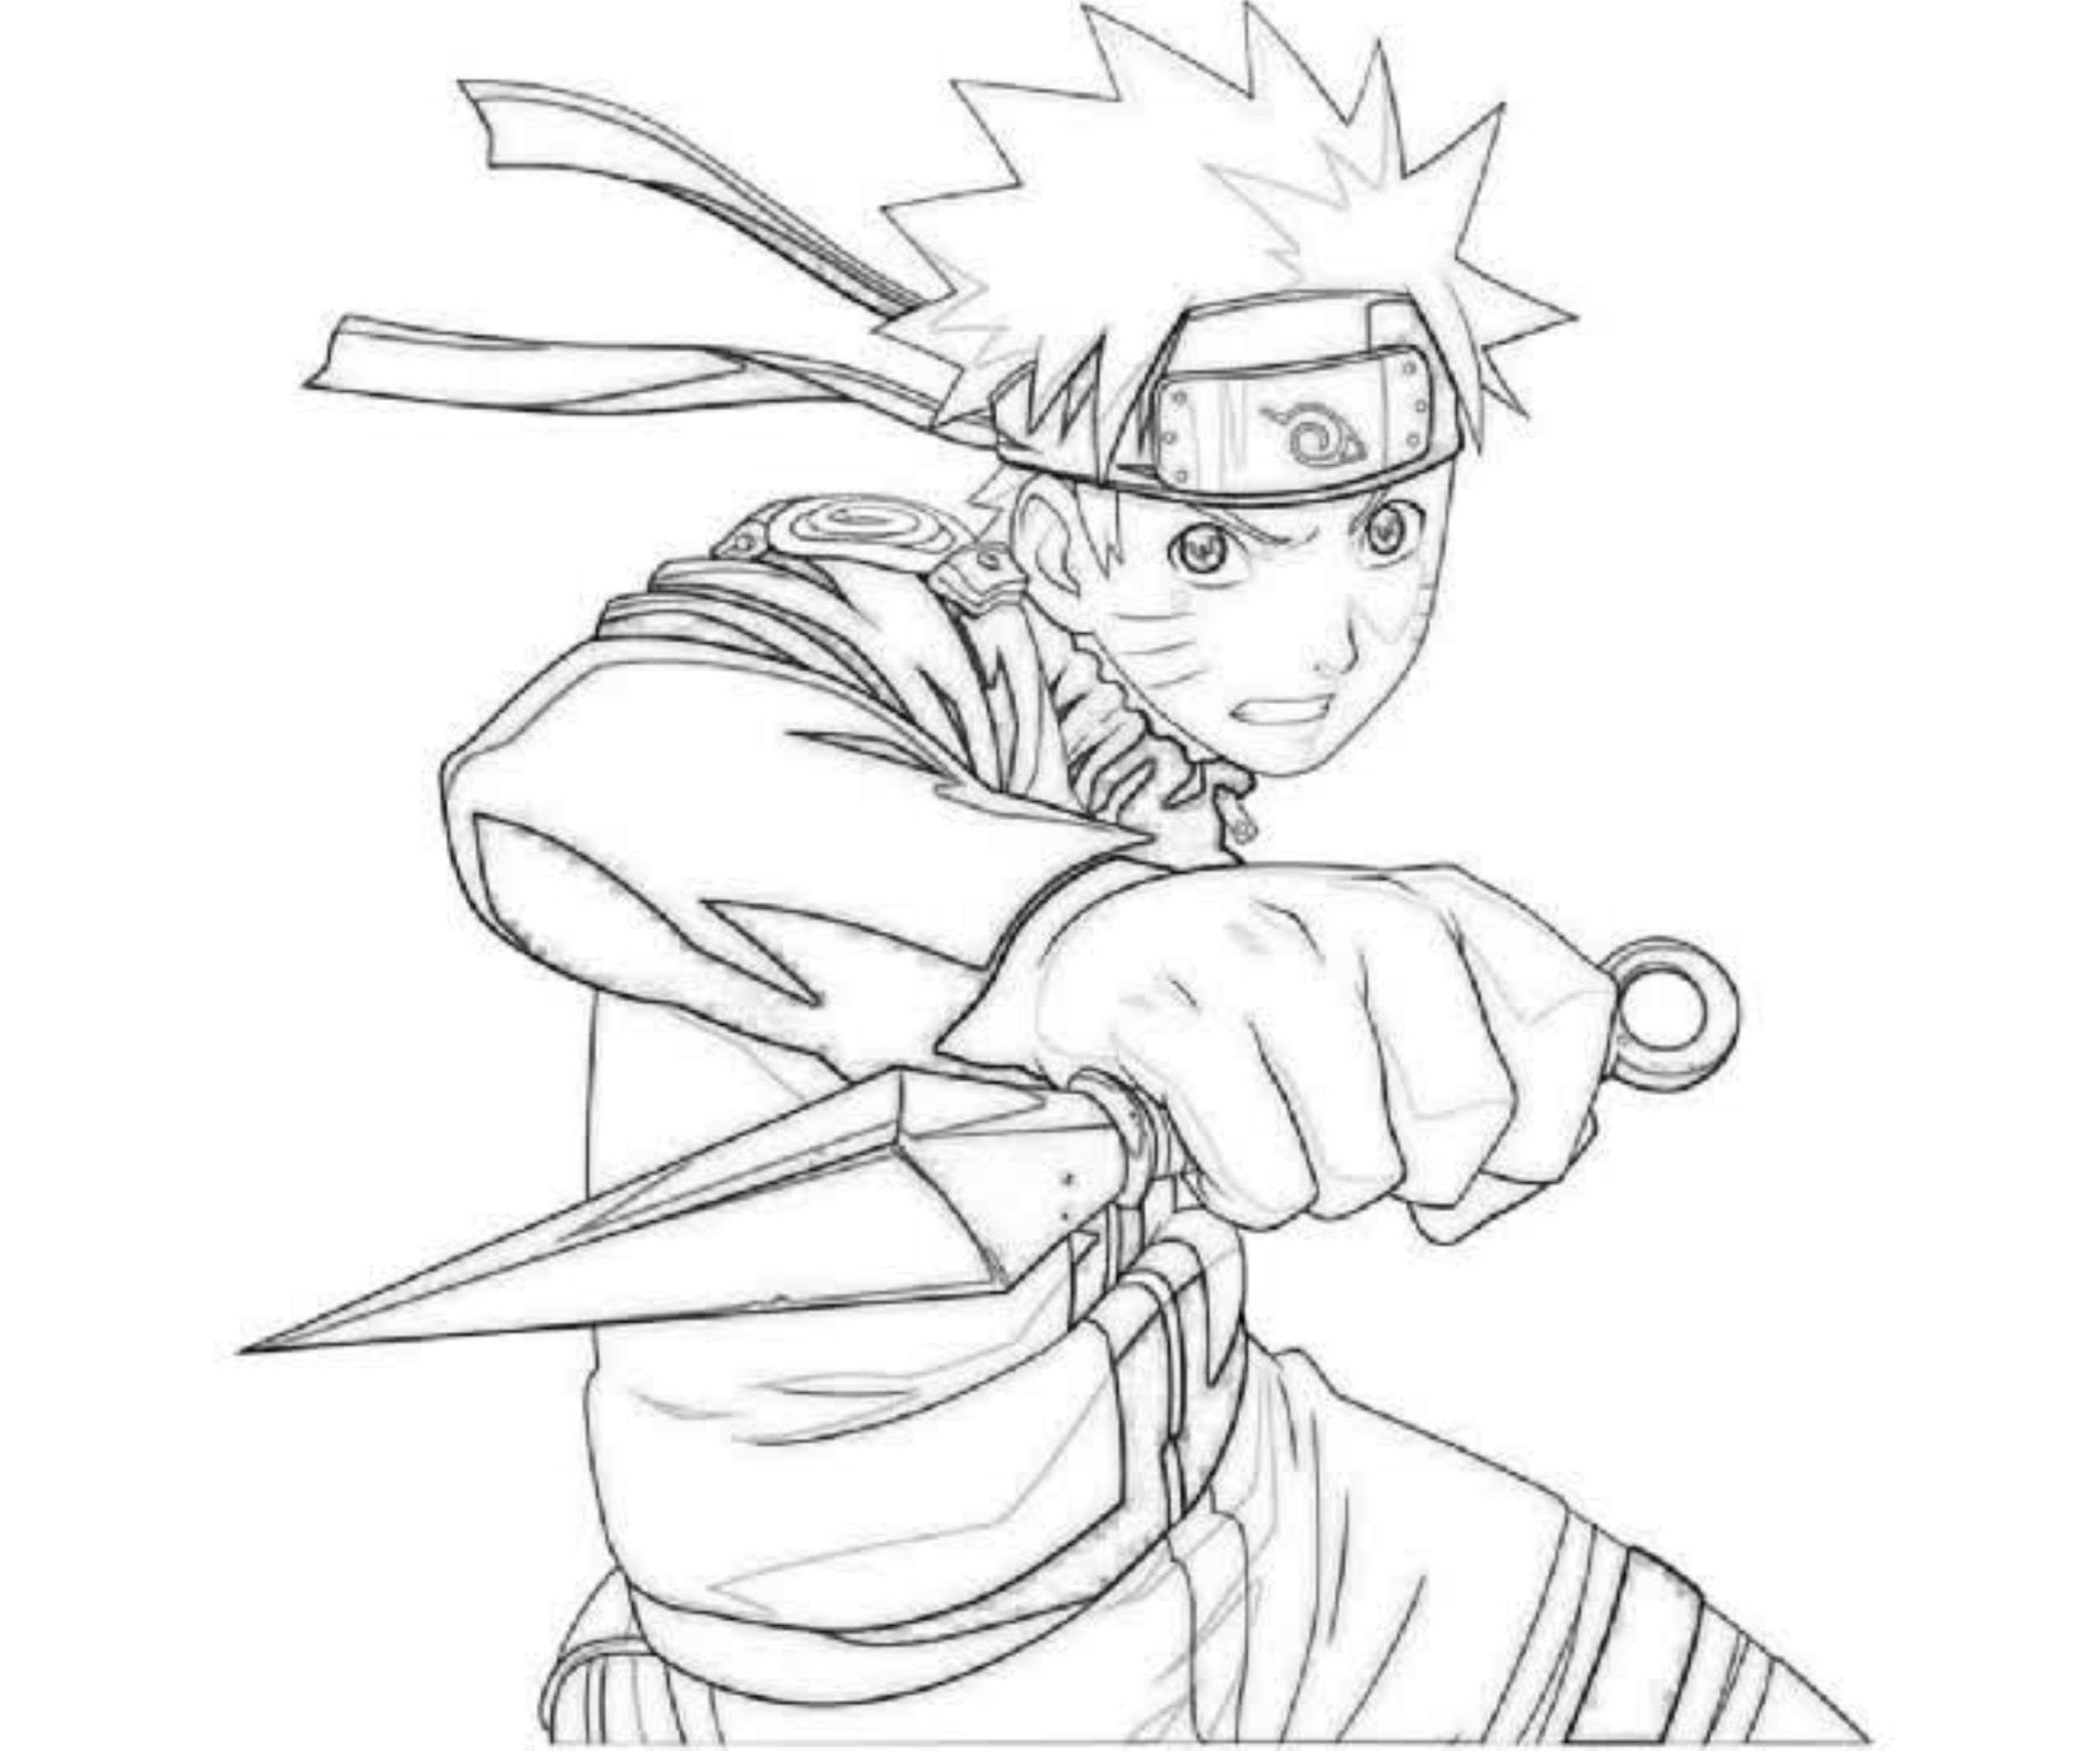 naruto coloring images naruto to color for children naruto kids coloring pages images coloring naruto